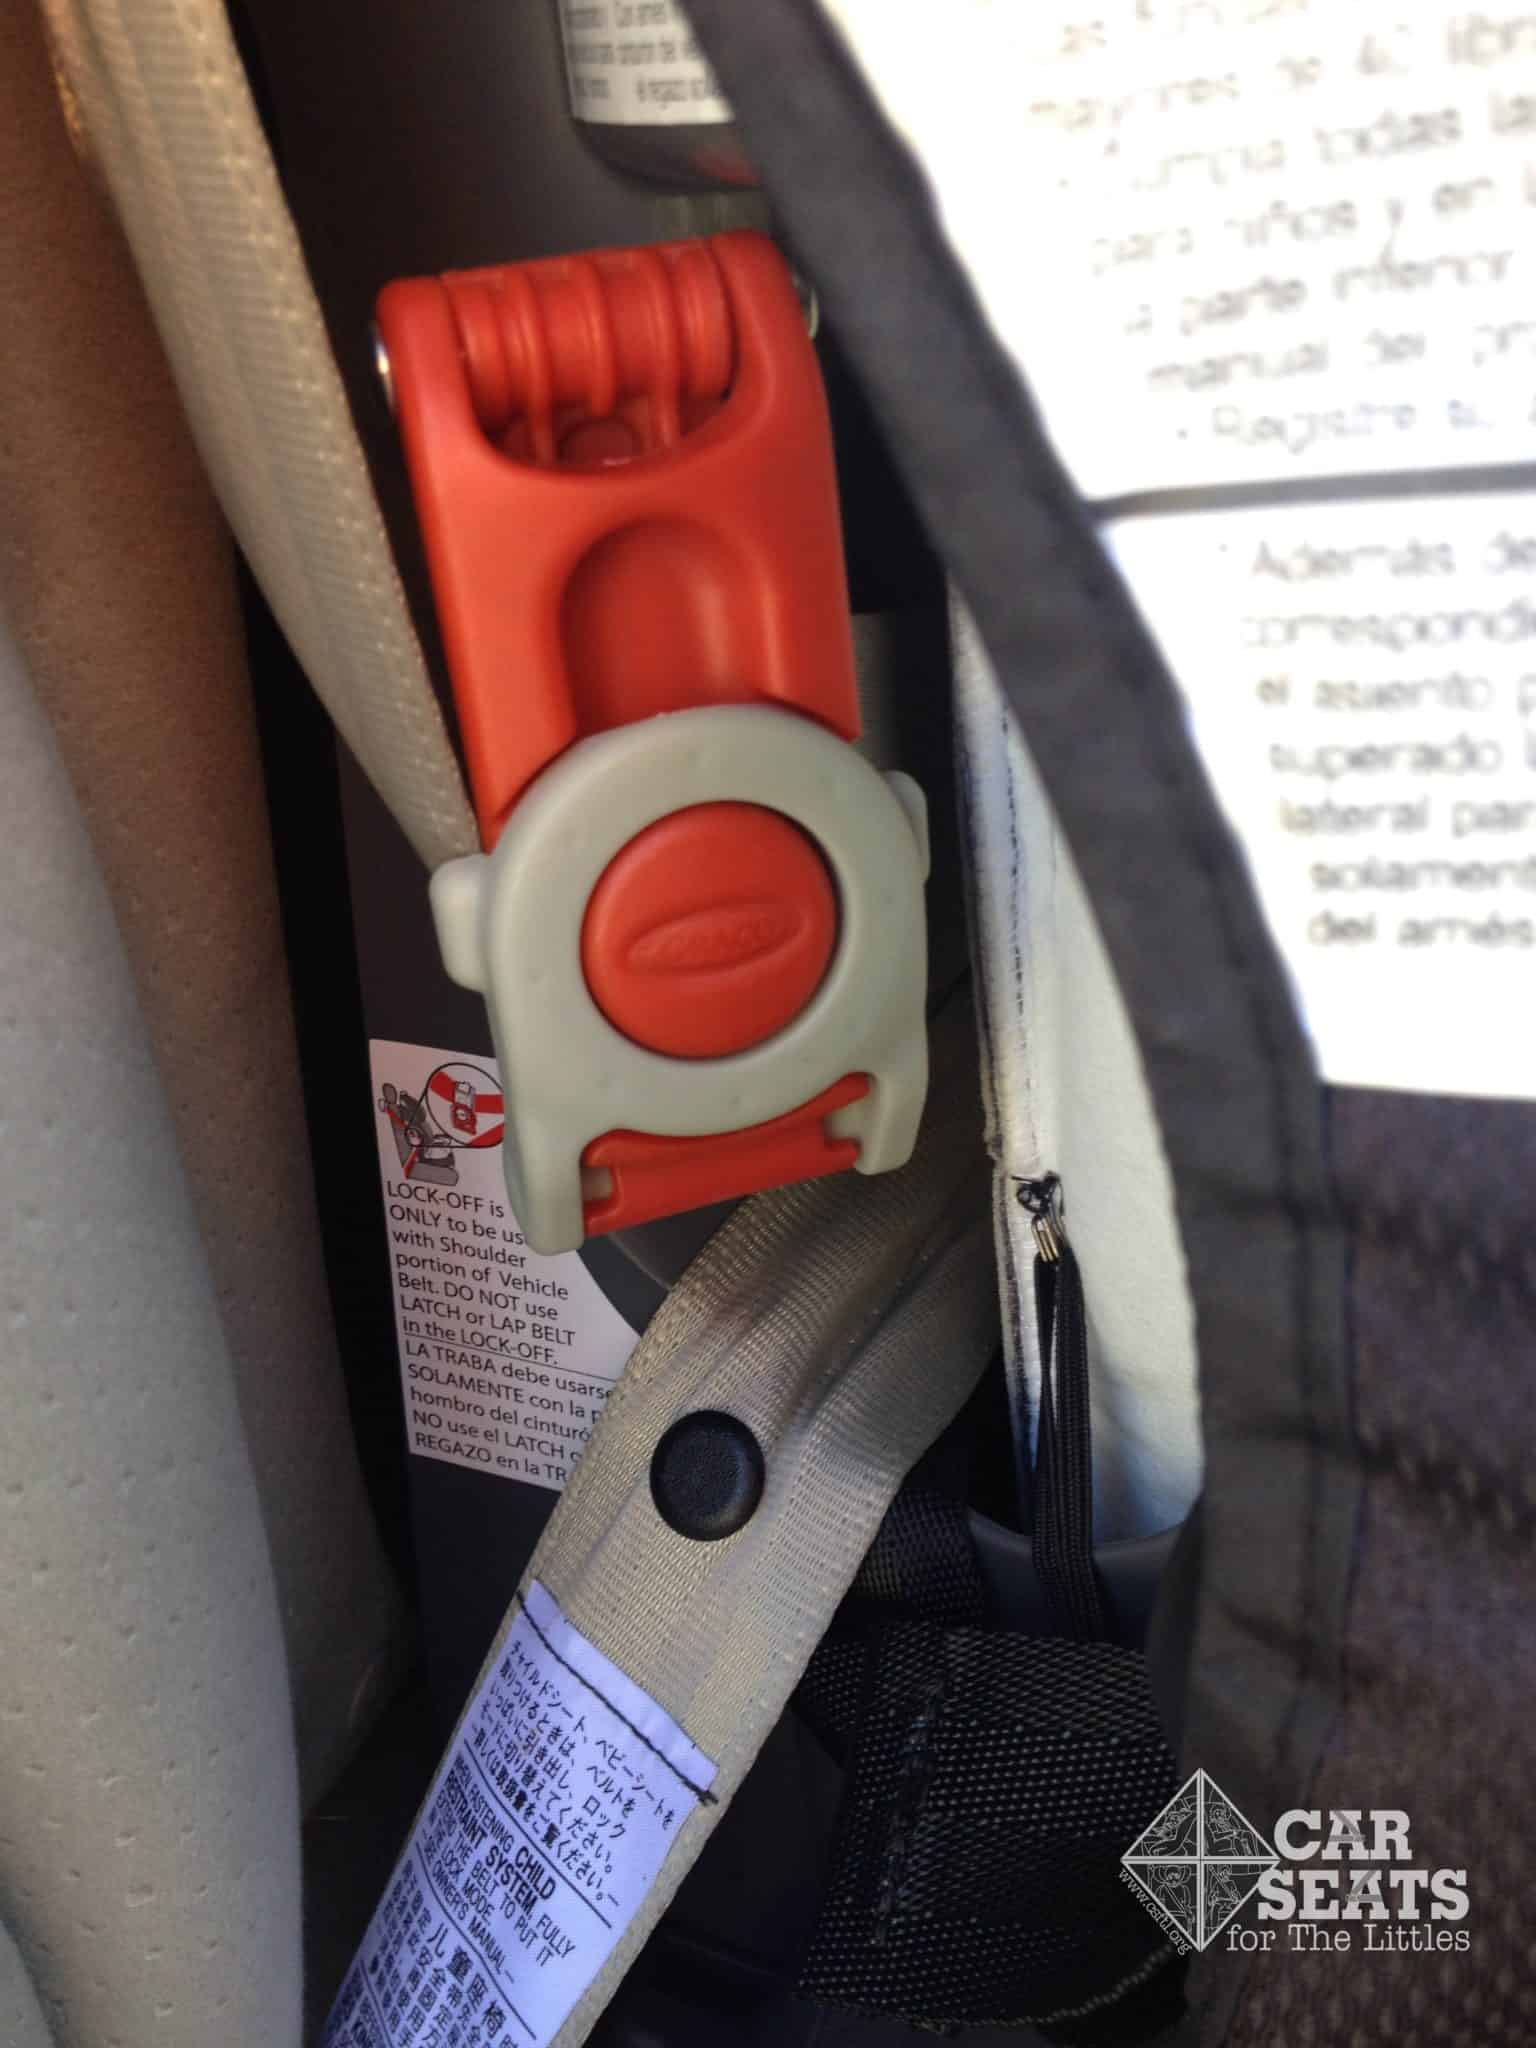 infa secure car seat installation instructions